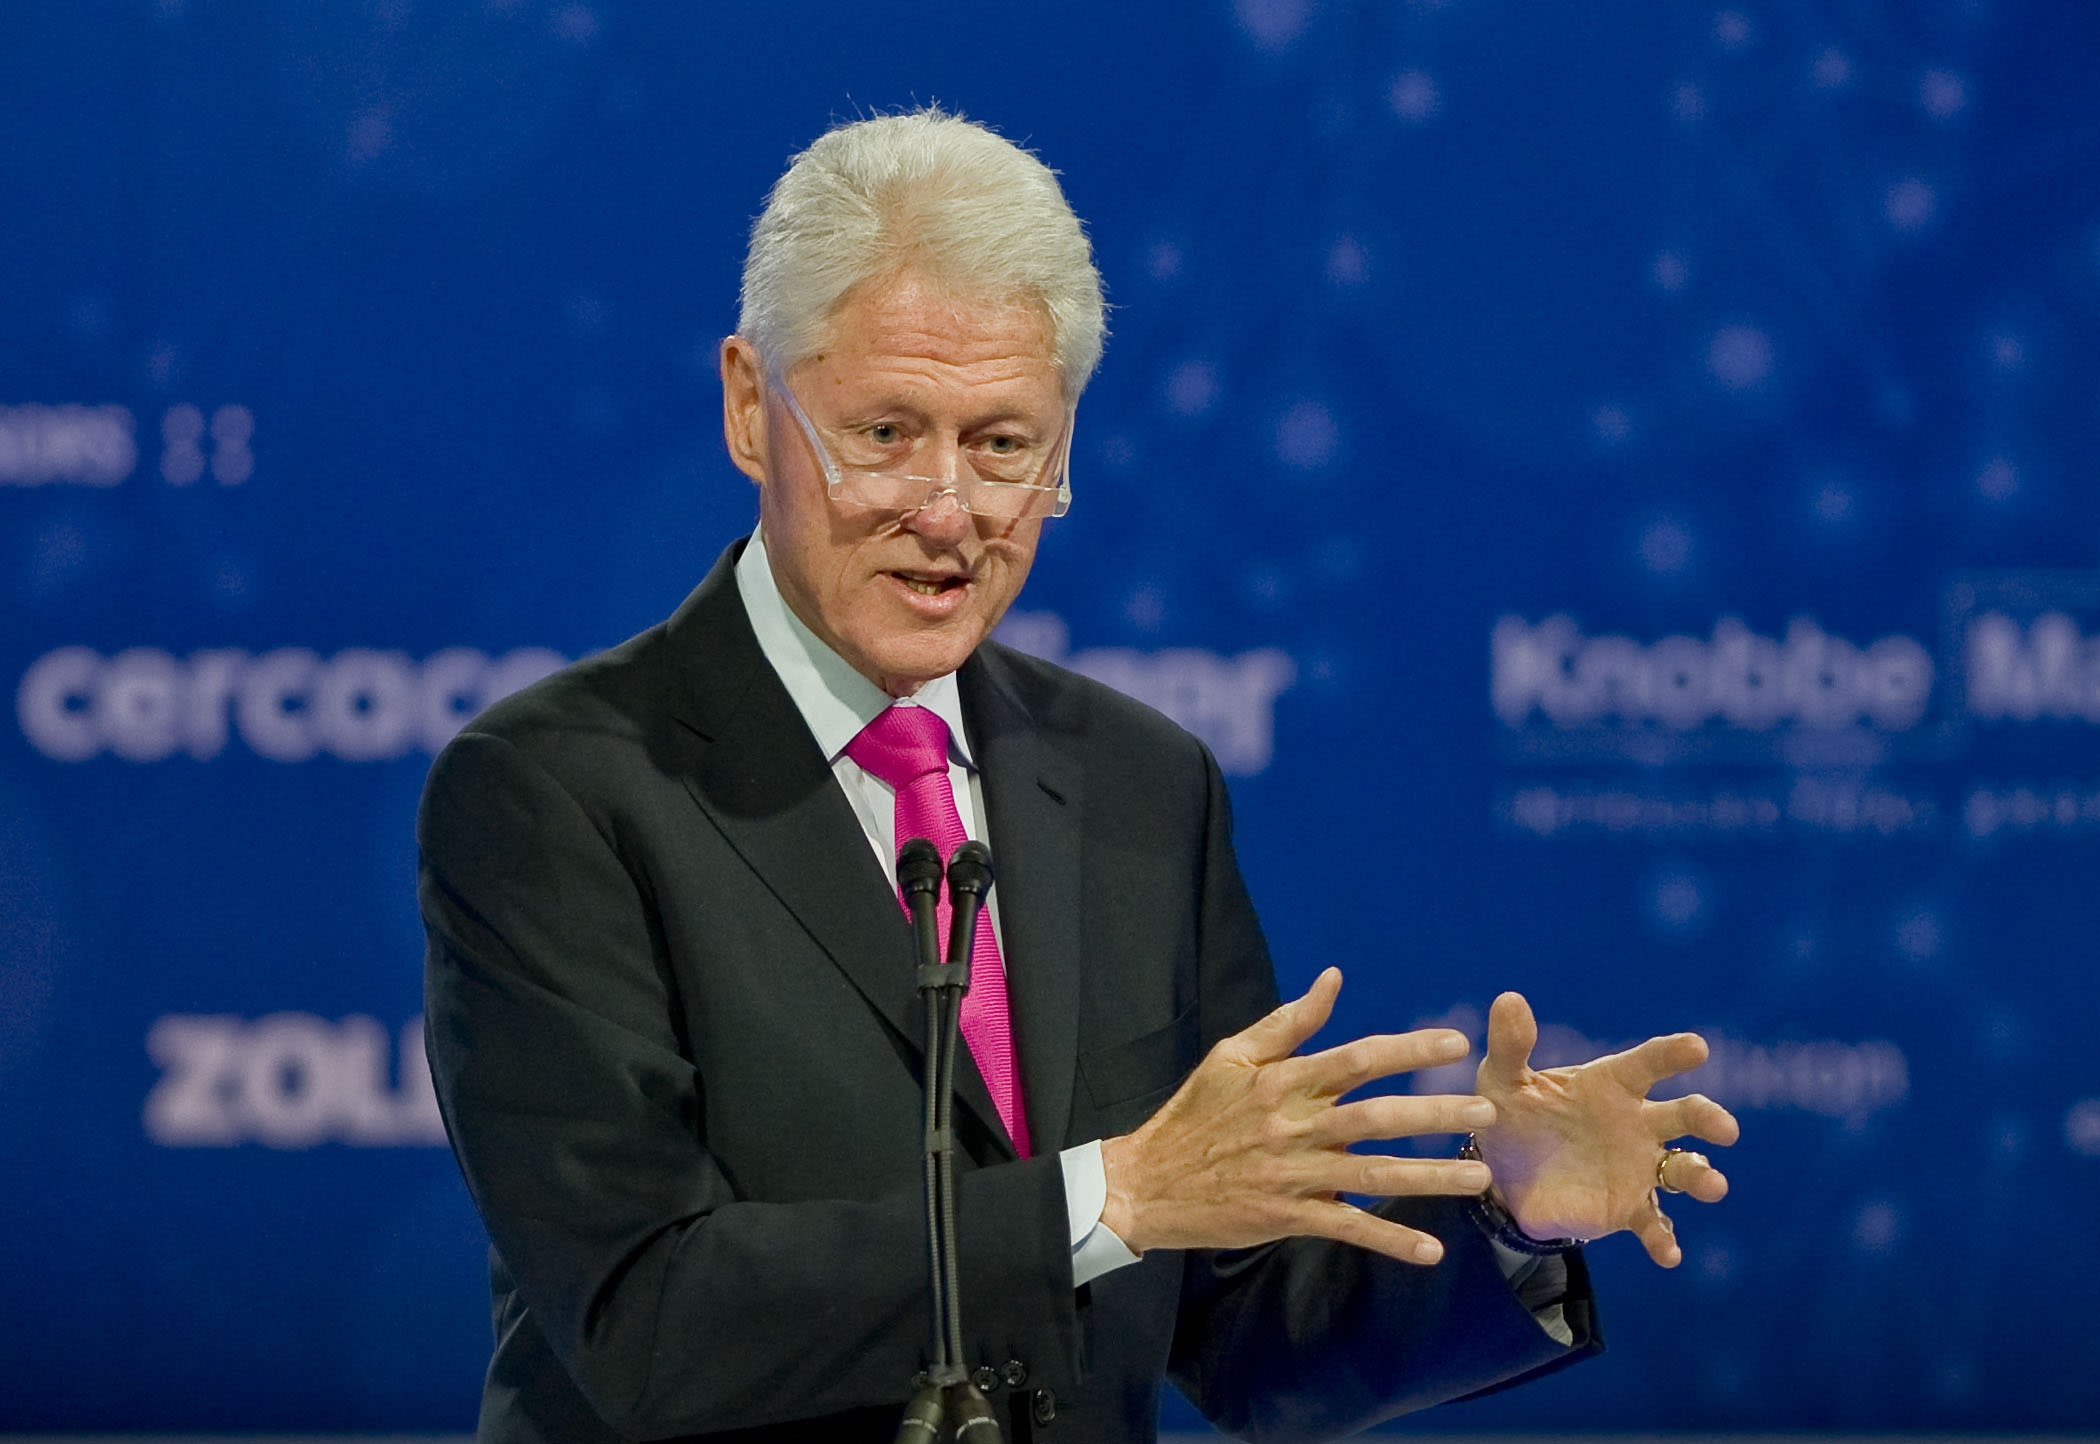 If Hillary Clinton becomes president, Bill wants to be called 'Adam'